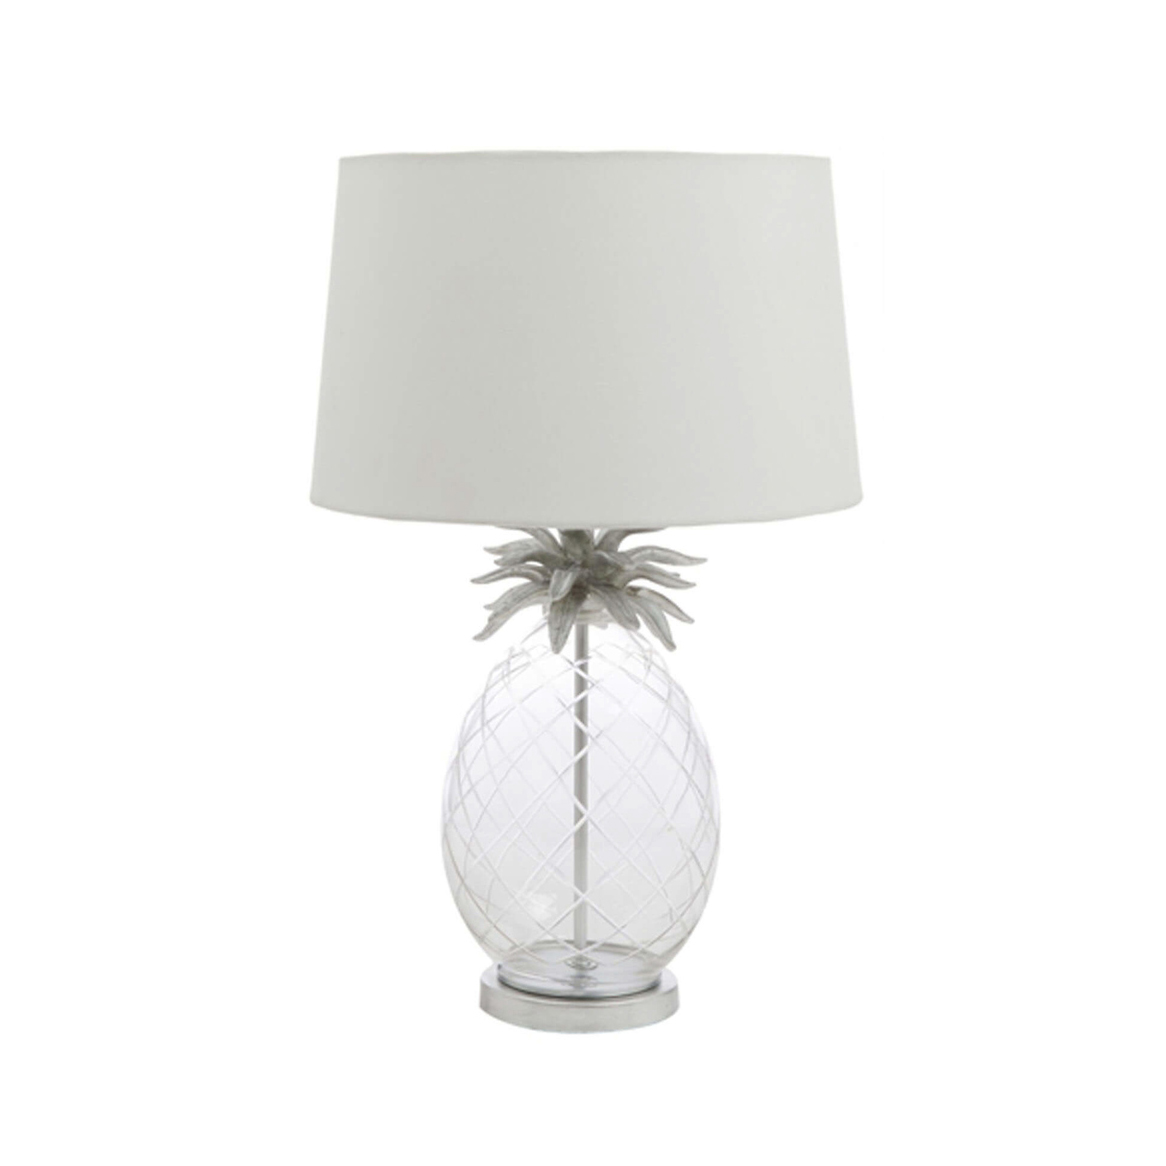 Laura Ashley Pineapple Large Table Lamp Glass With Shade